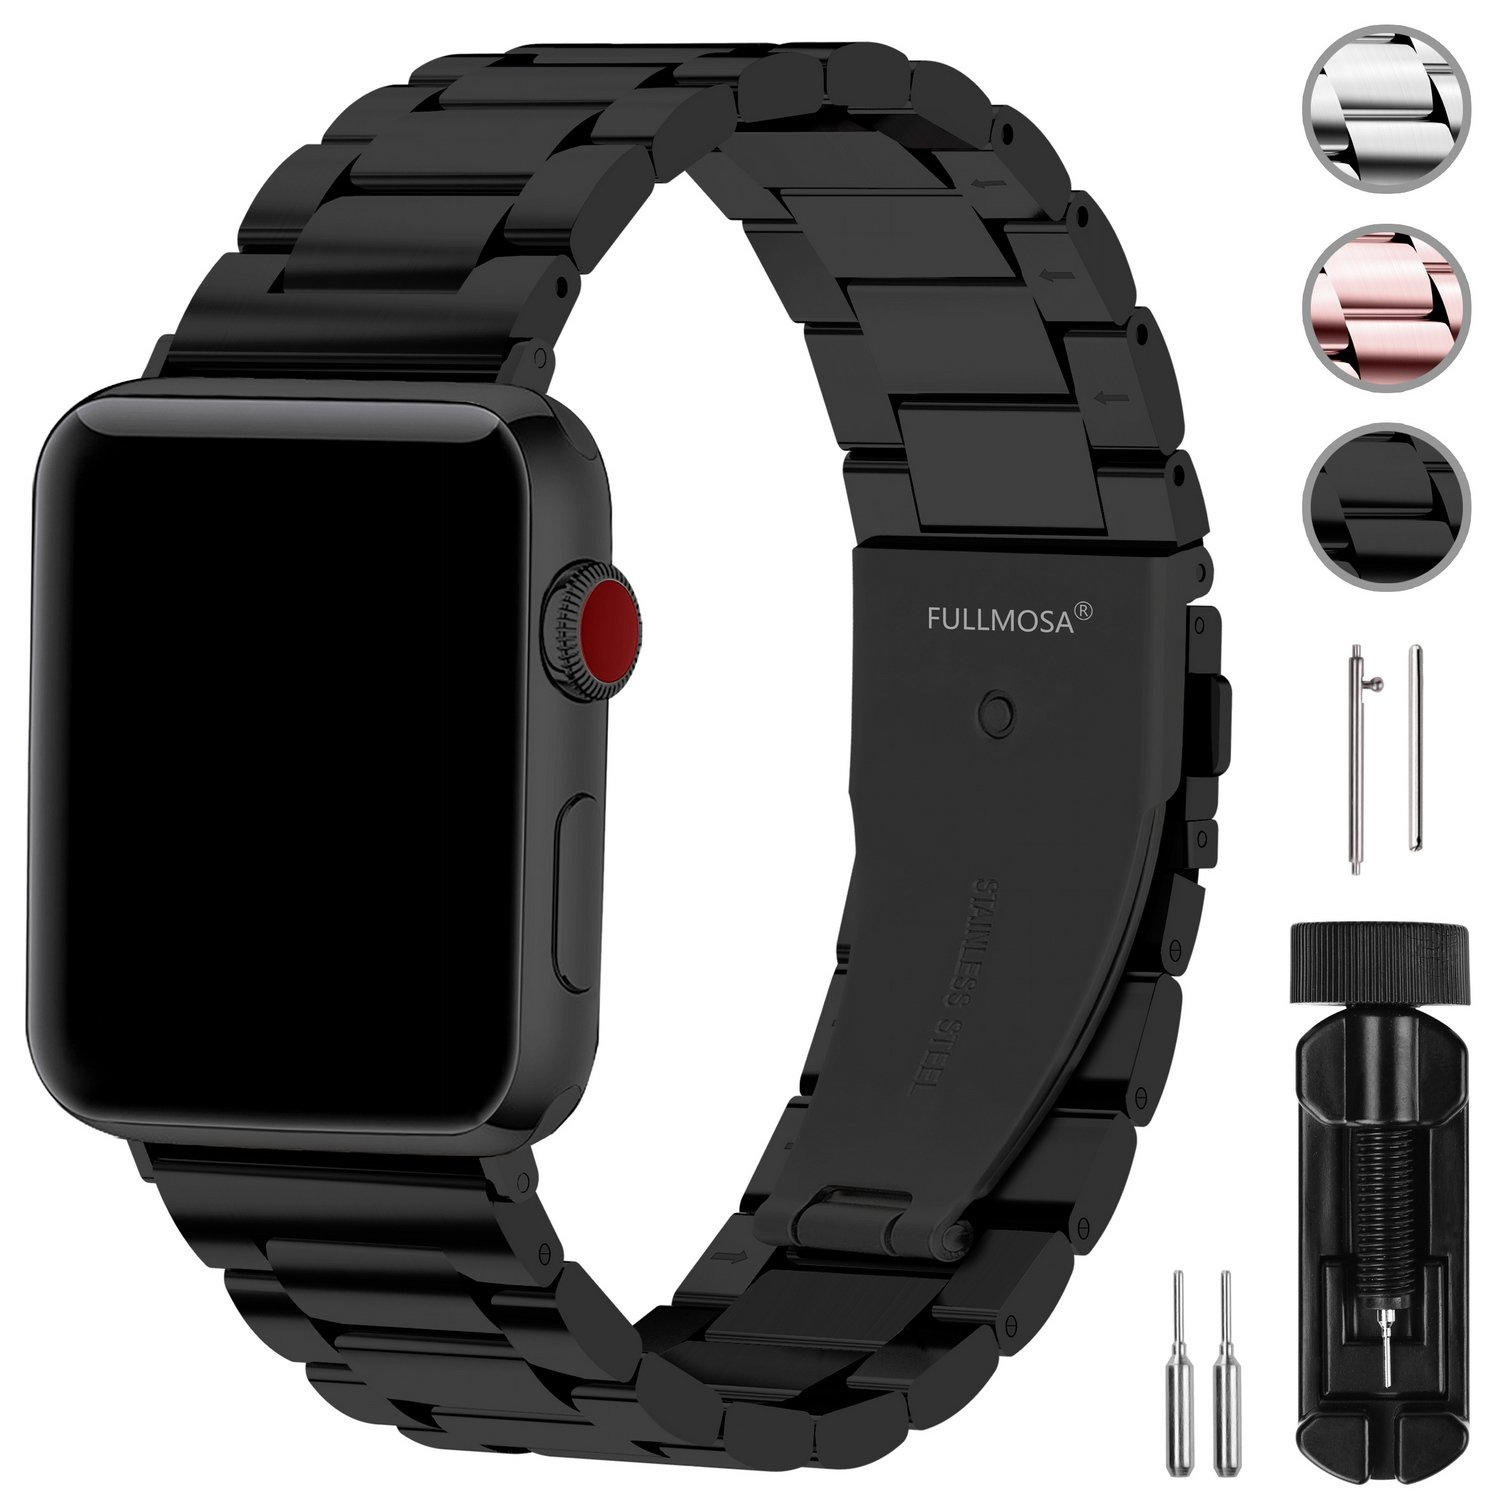 Fullmosa Stainless Steel Metal for Apple Watch Bands Black